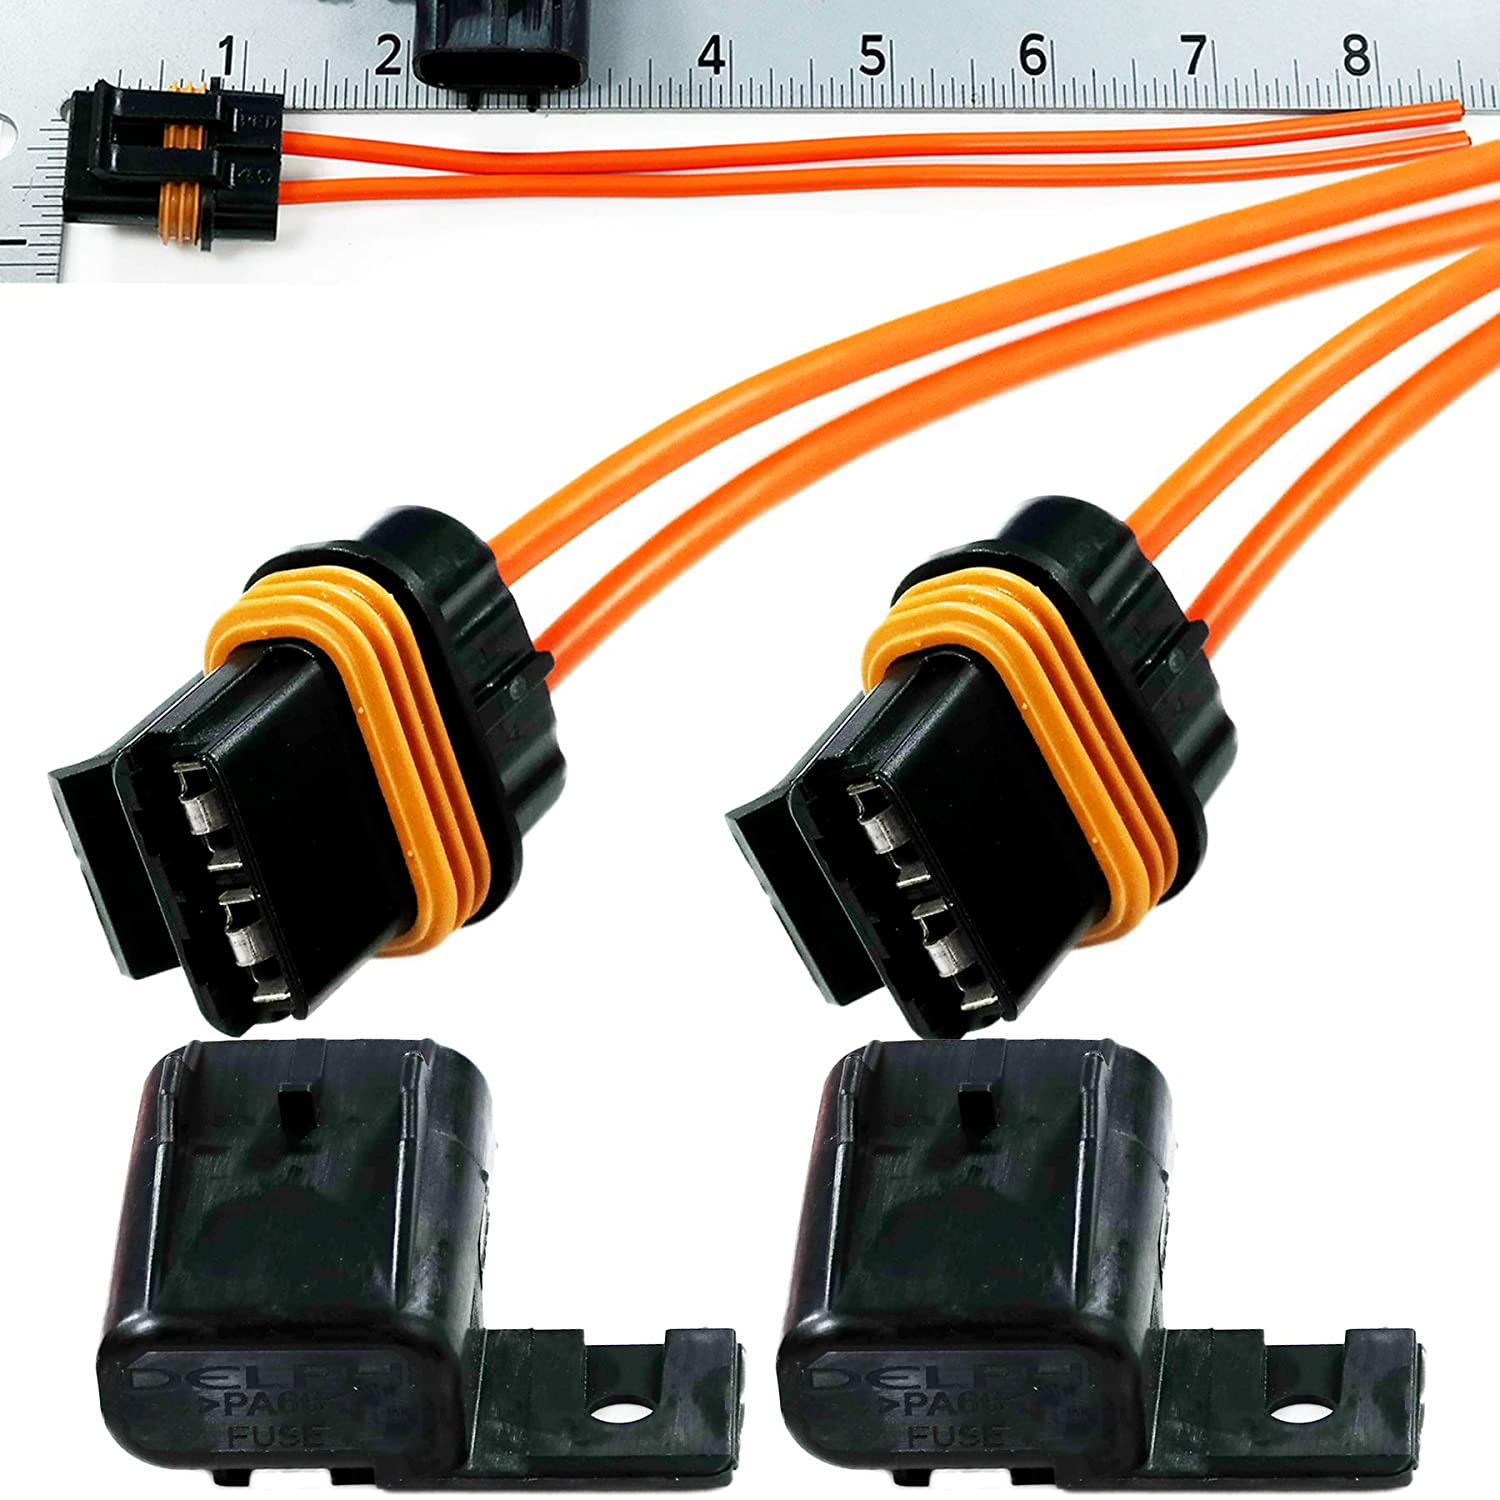 Delphi Assembly 8 Wire ATO ATOF ATC Fuse Holder 10,12 GA 30 Amps Sealed Wire Kit 2 Completed Pack